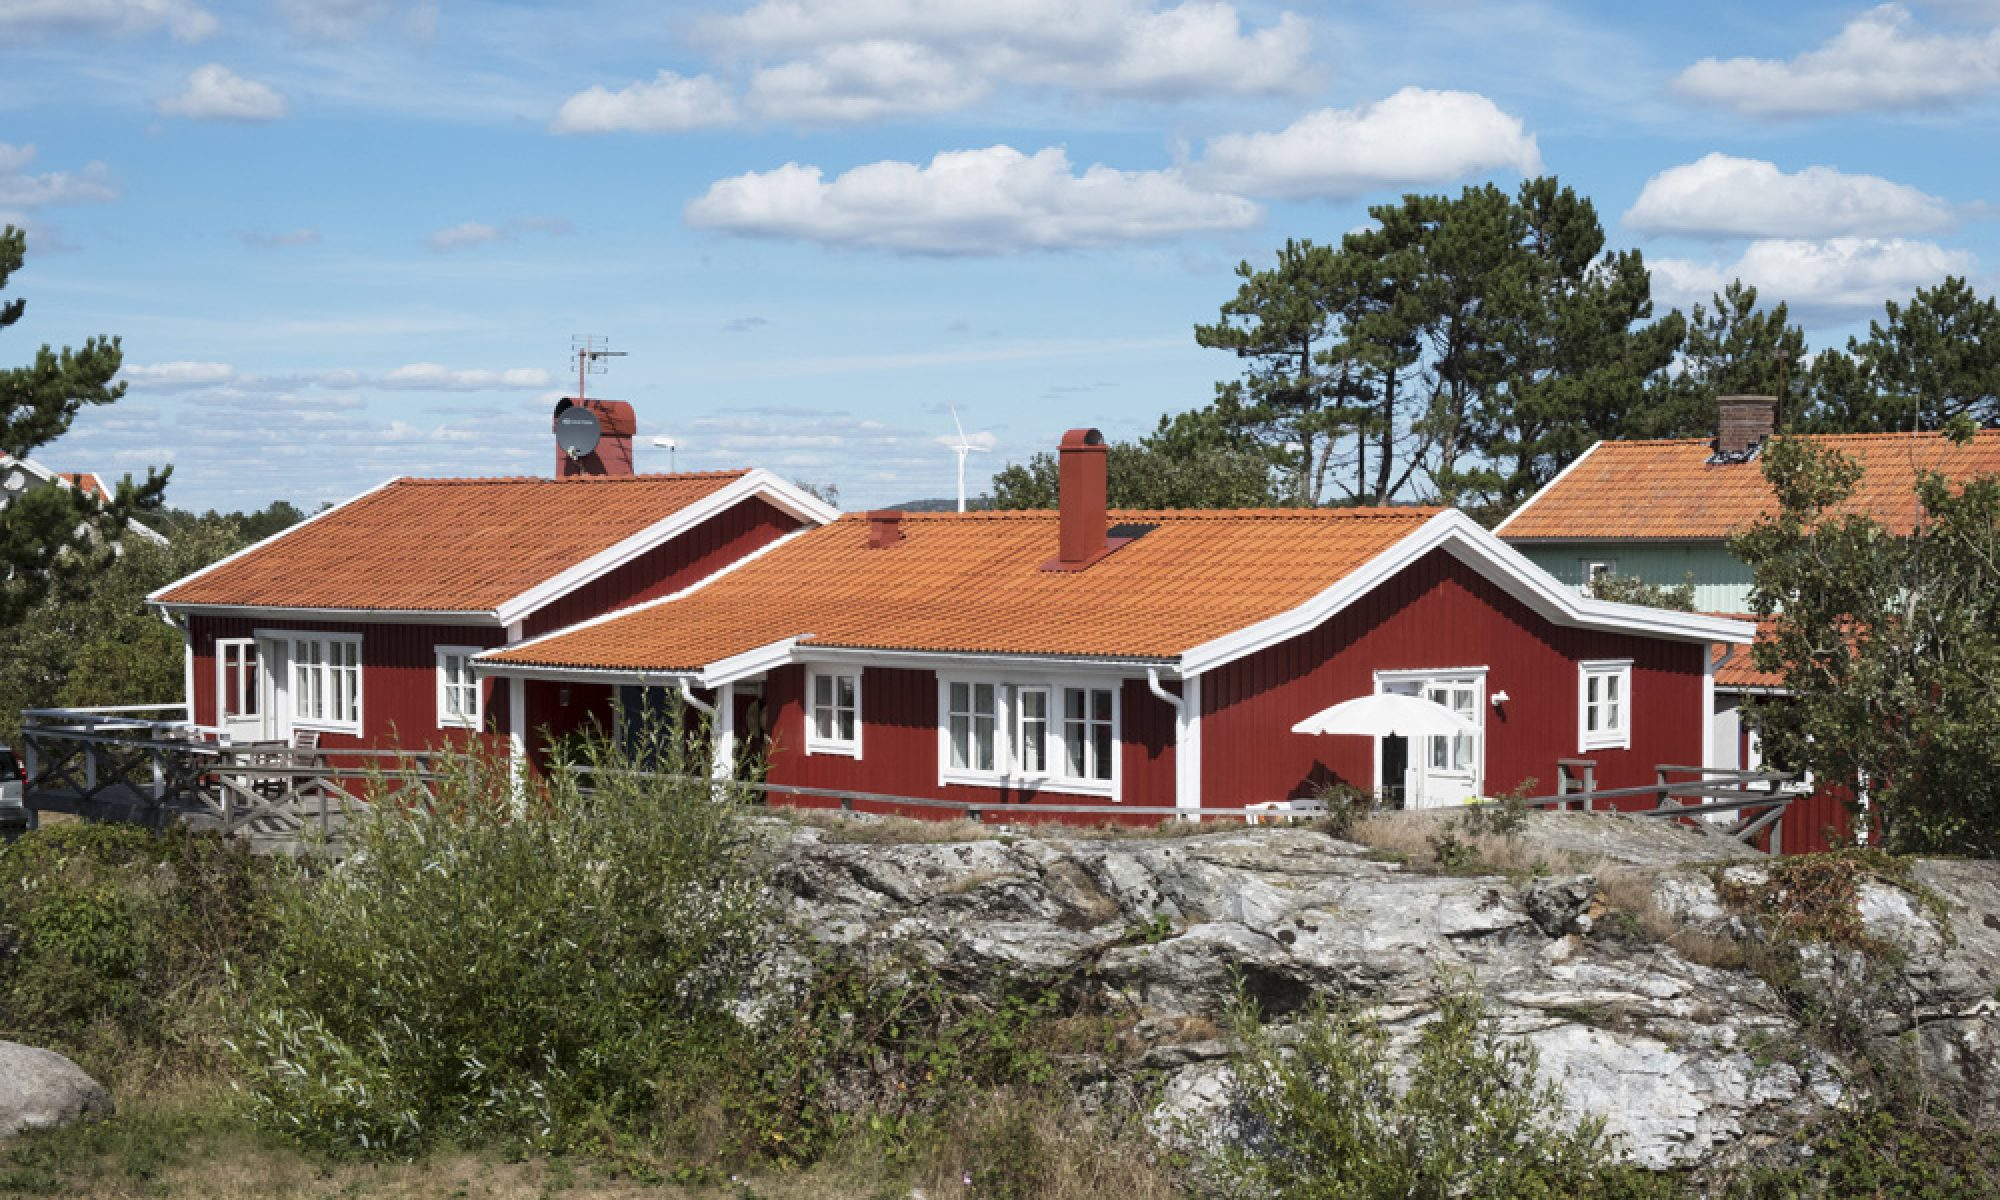 kvarnstugan - charming holiday house in Mollösund, West Sweden